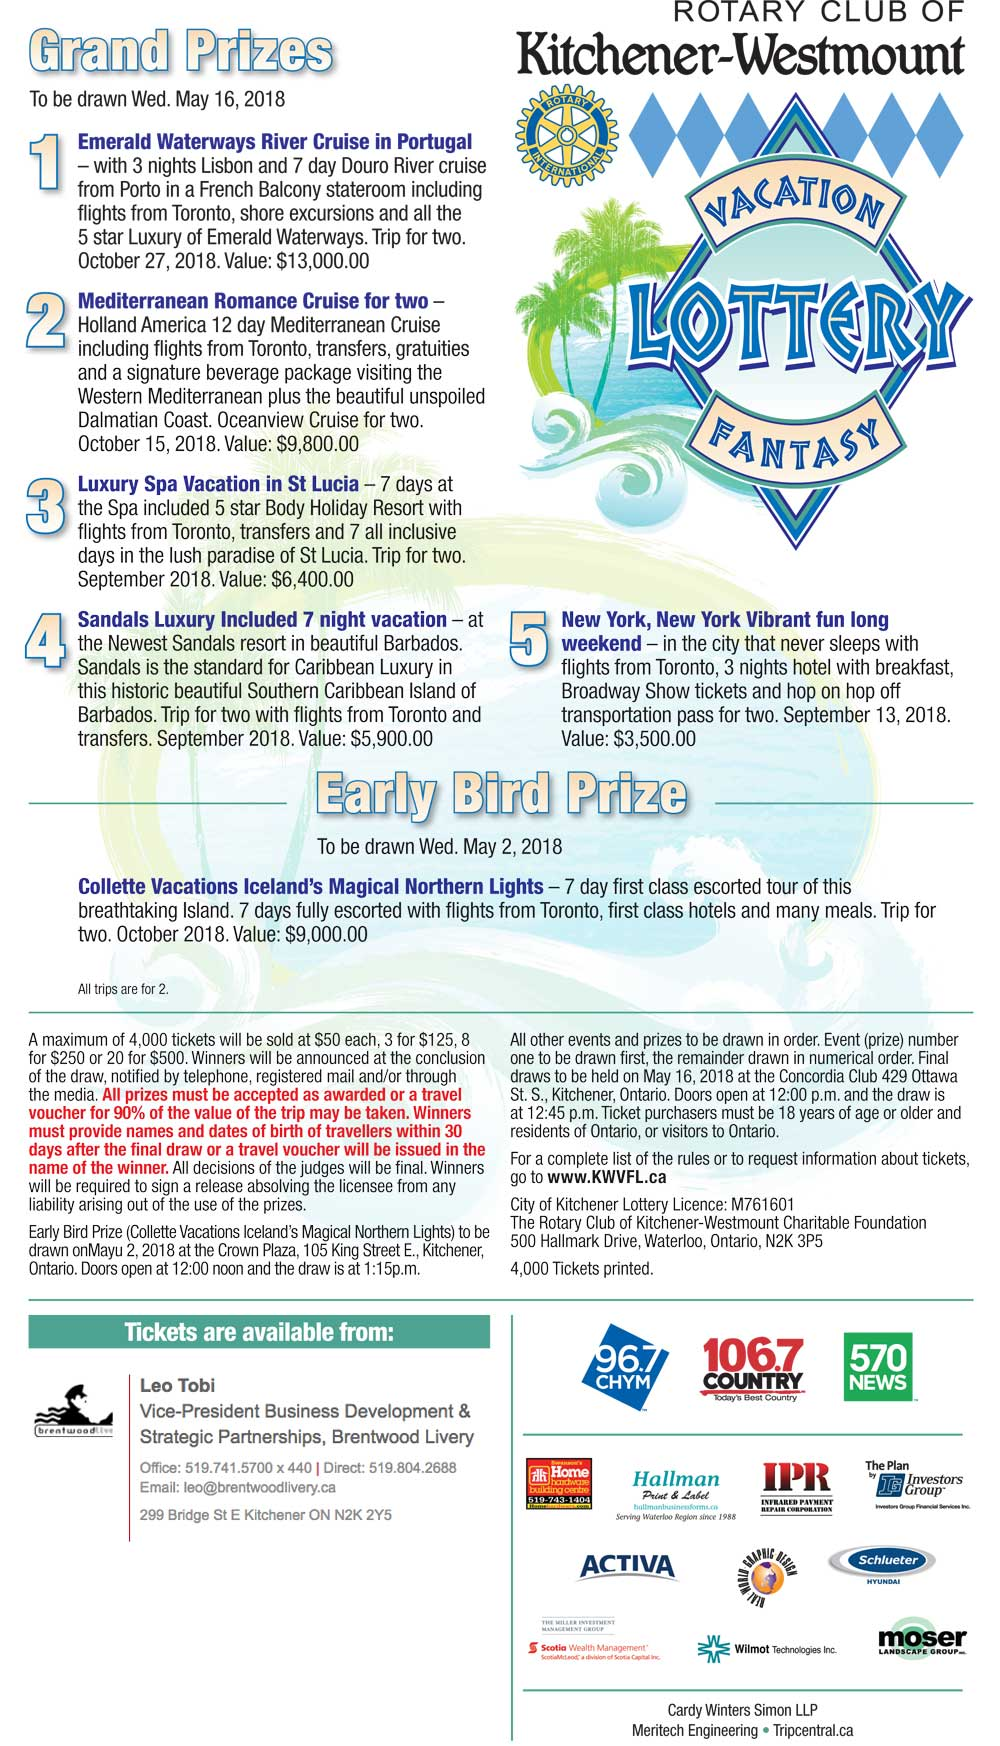 Rotary Club of Kitchener-Westmount Vacation Fantasy Lottery